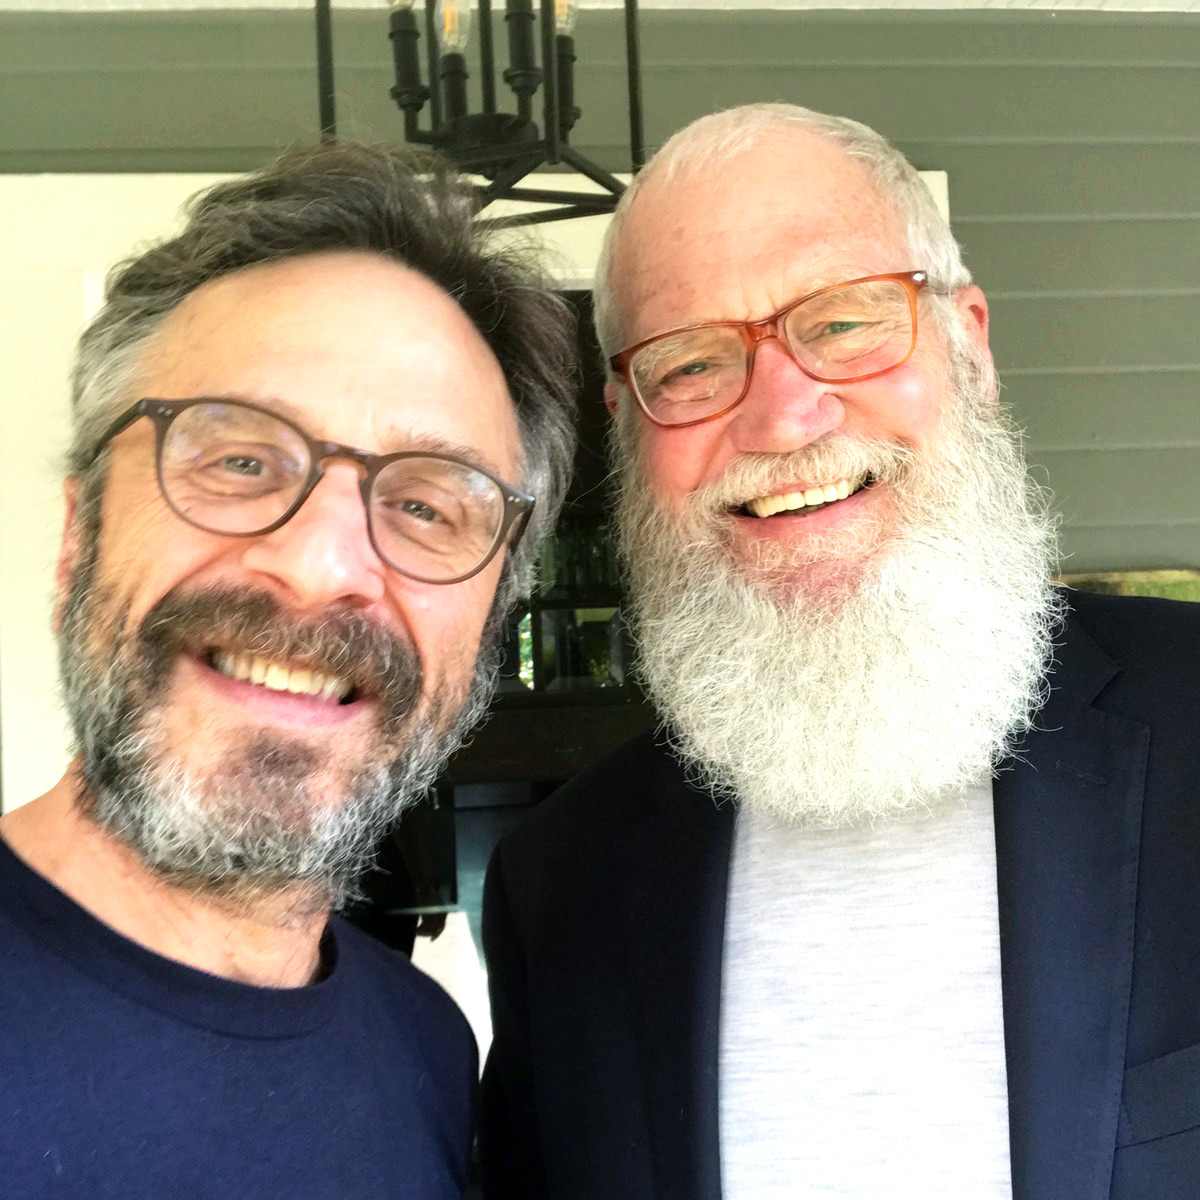 This Week in Comedy Podcasts: Letterman on WTF